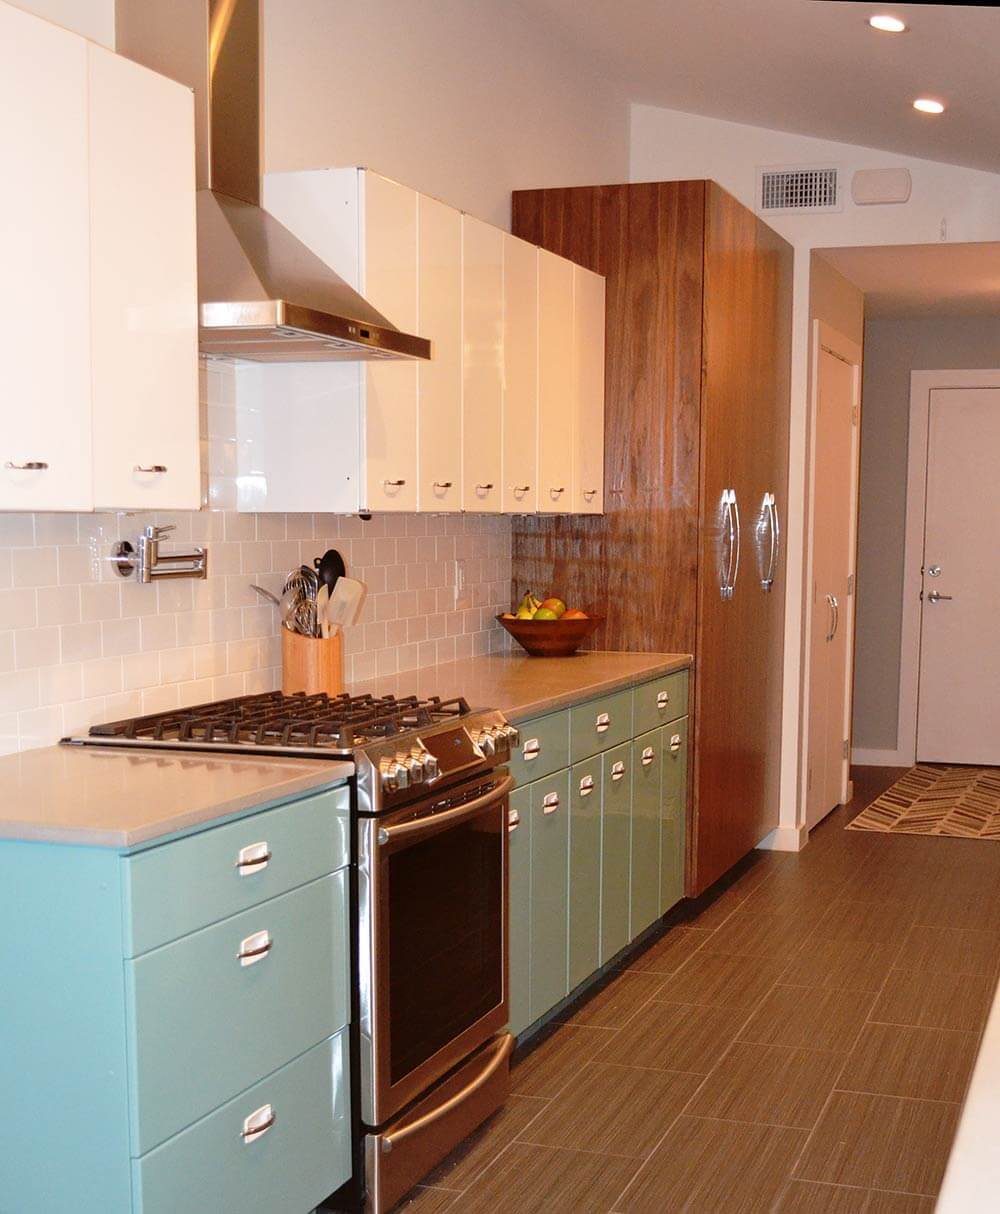 Kitchen Cabinets Vintage sam has a great experience with powder coating her vintage steel